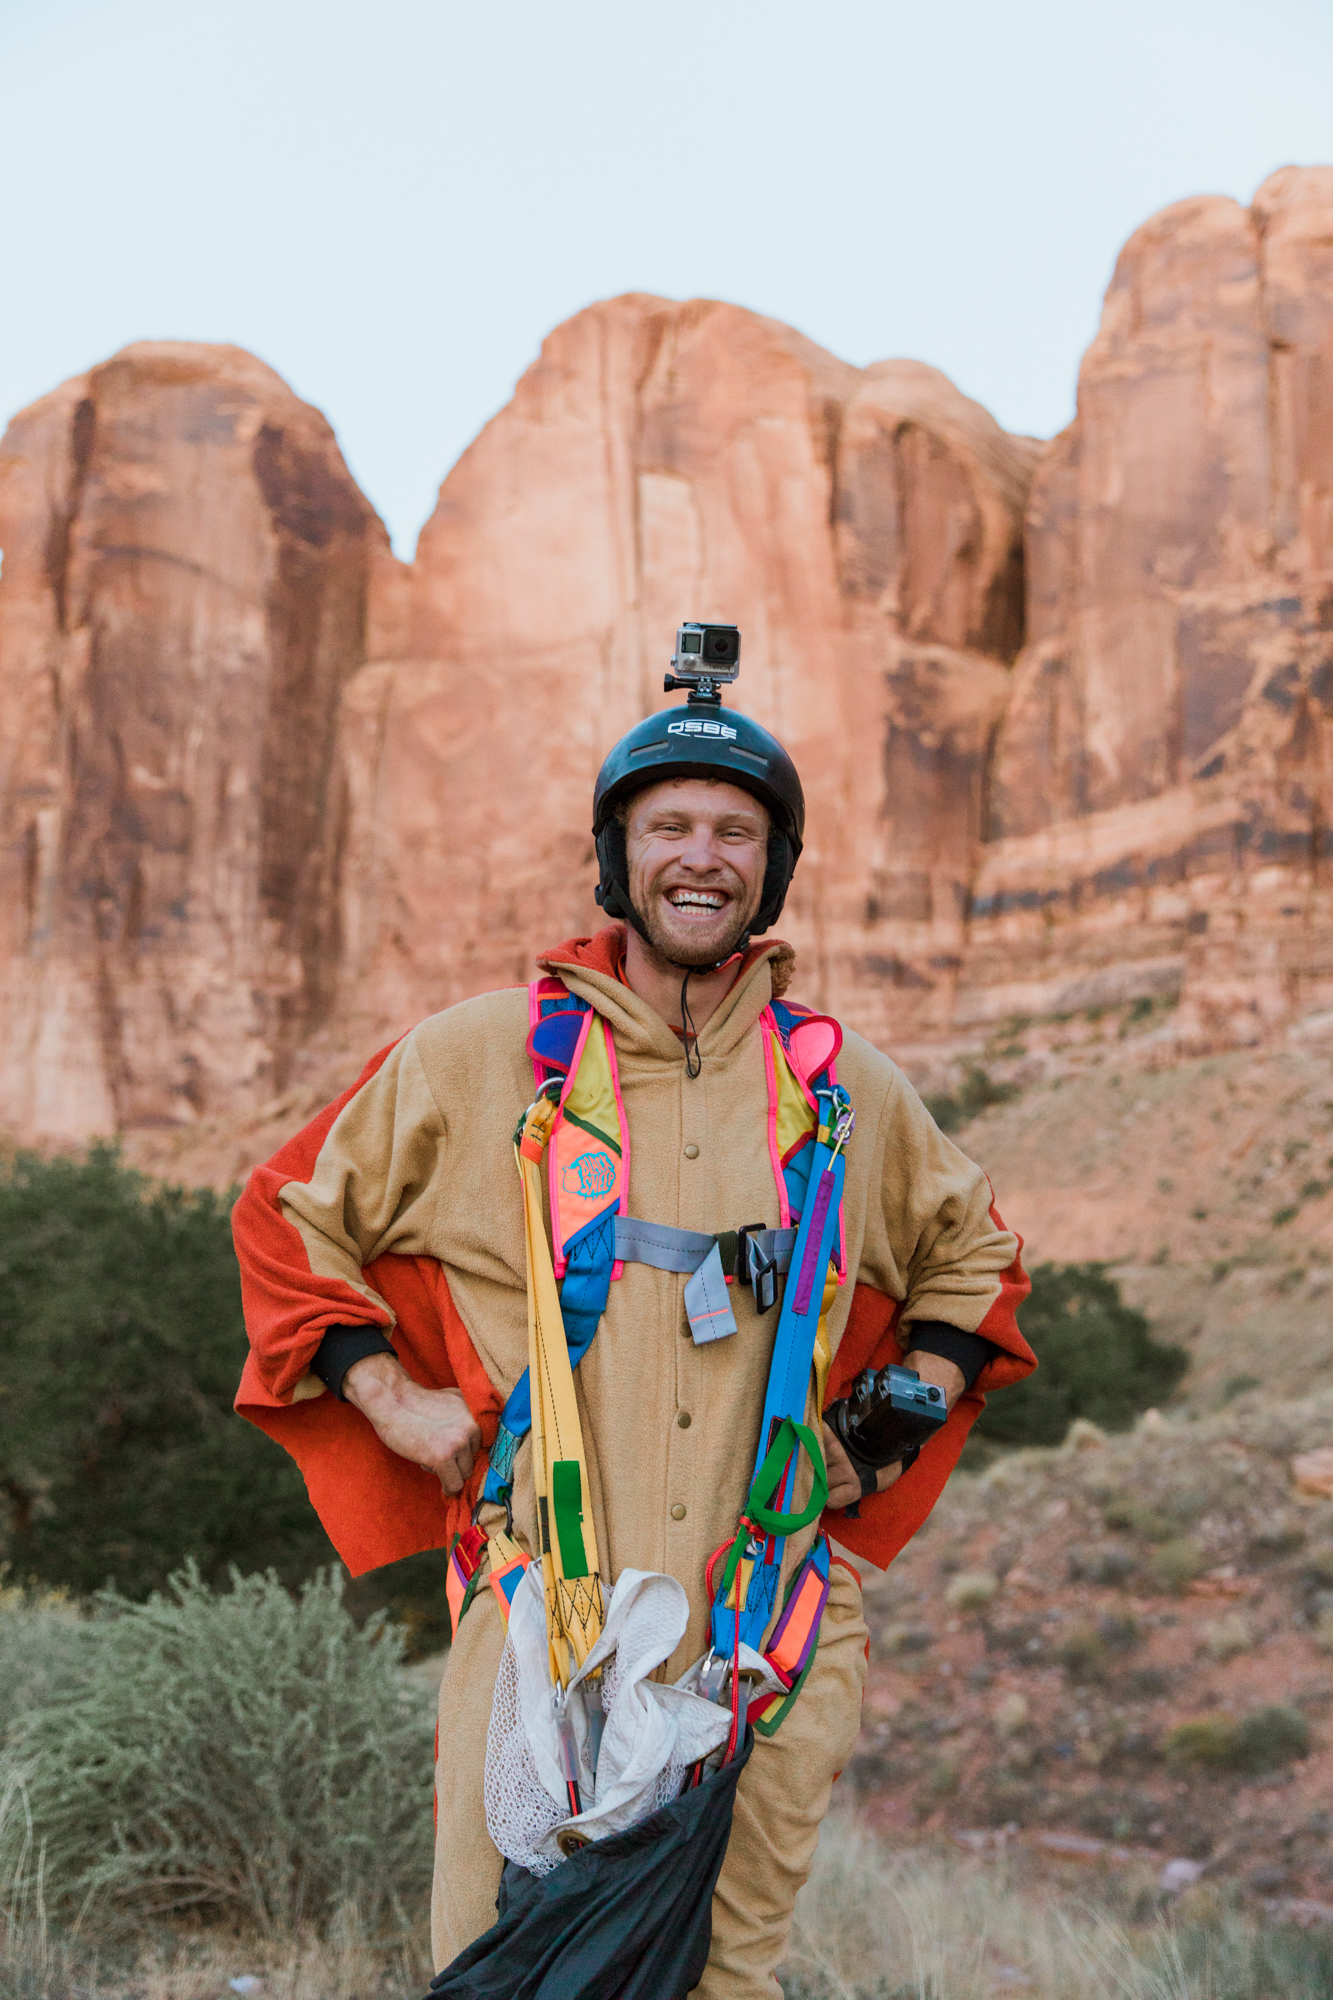 Sketchy Andy's 30th Birthday // BASE jumping in Moab, Utah // Outdoor Adventure Photographer // www.abbihearne.com